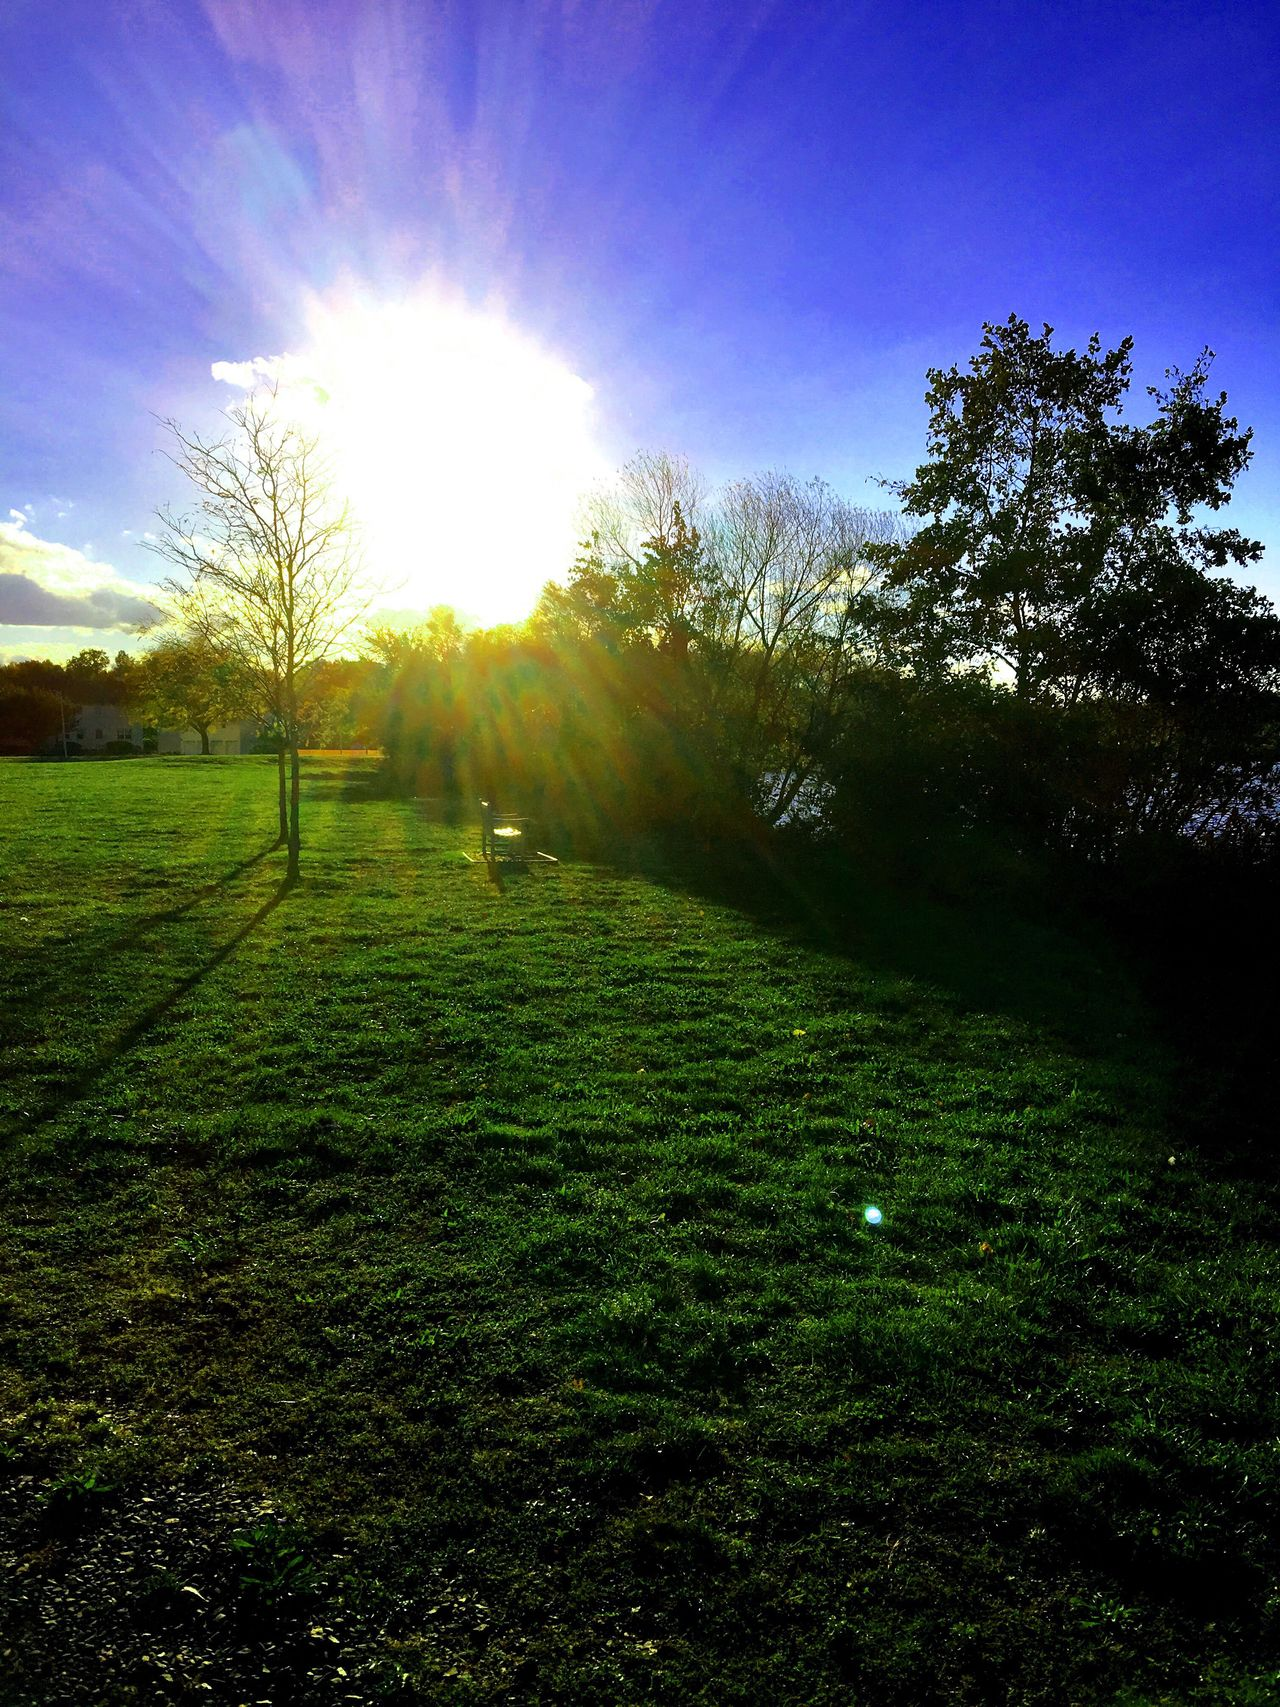 Sunset at the lake Grass Tree Sunlight Nature Green Color Beauty In Nature Sun Tranquility Tranquil Scene Outdoors No People Landscape Sky Iphonephotography Fallfoliage Fall Beauty Colorphotography Camerafilters